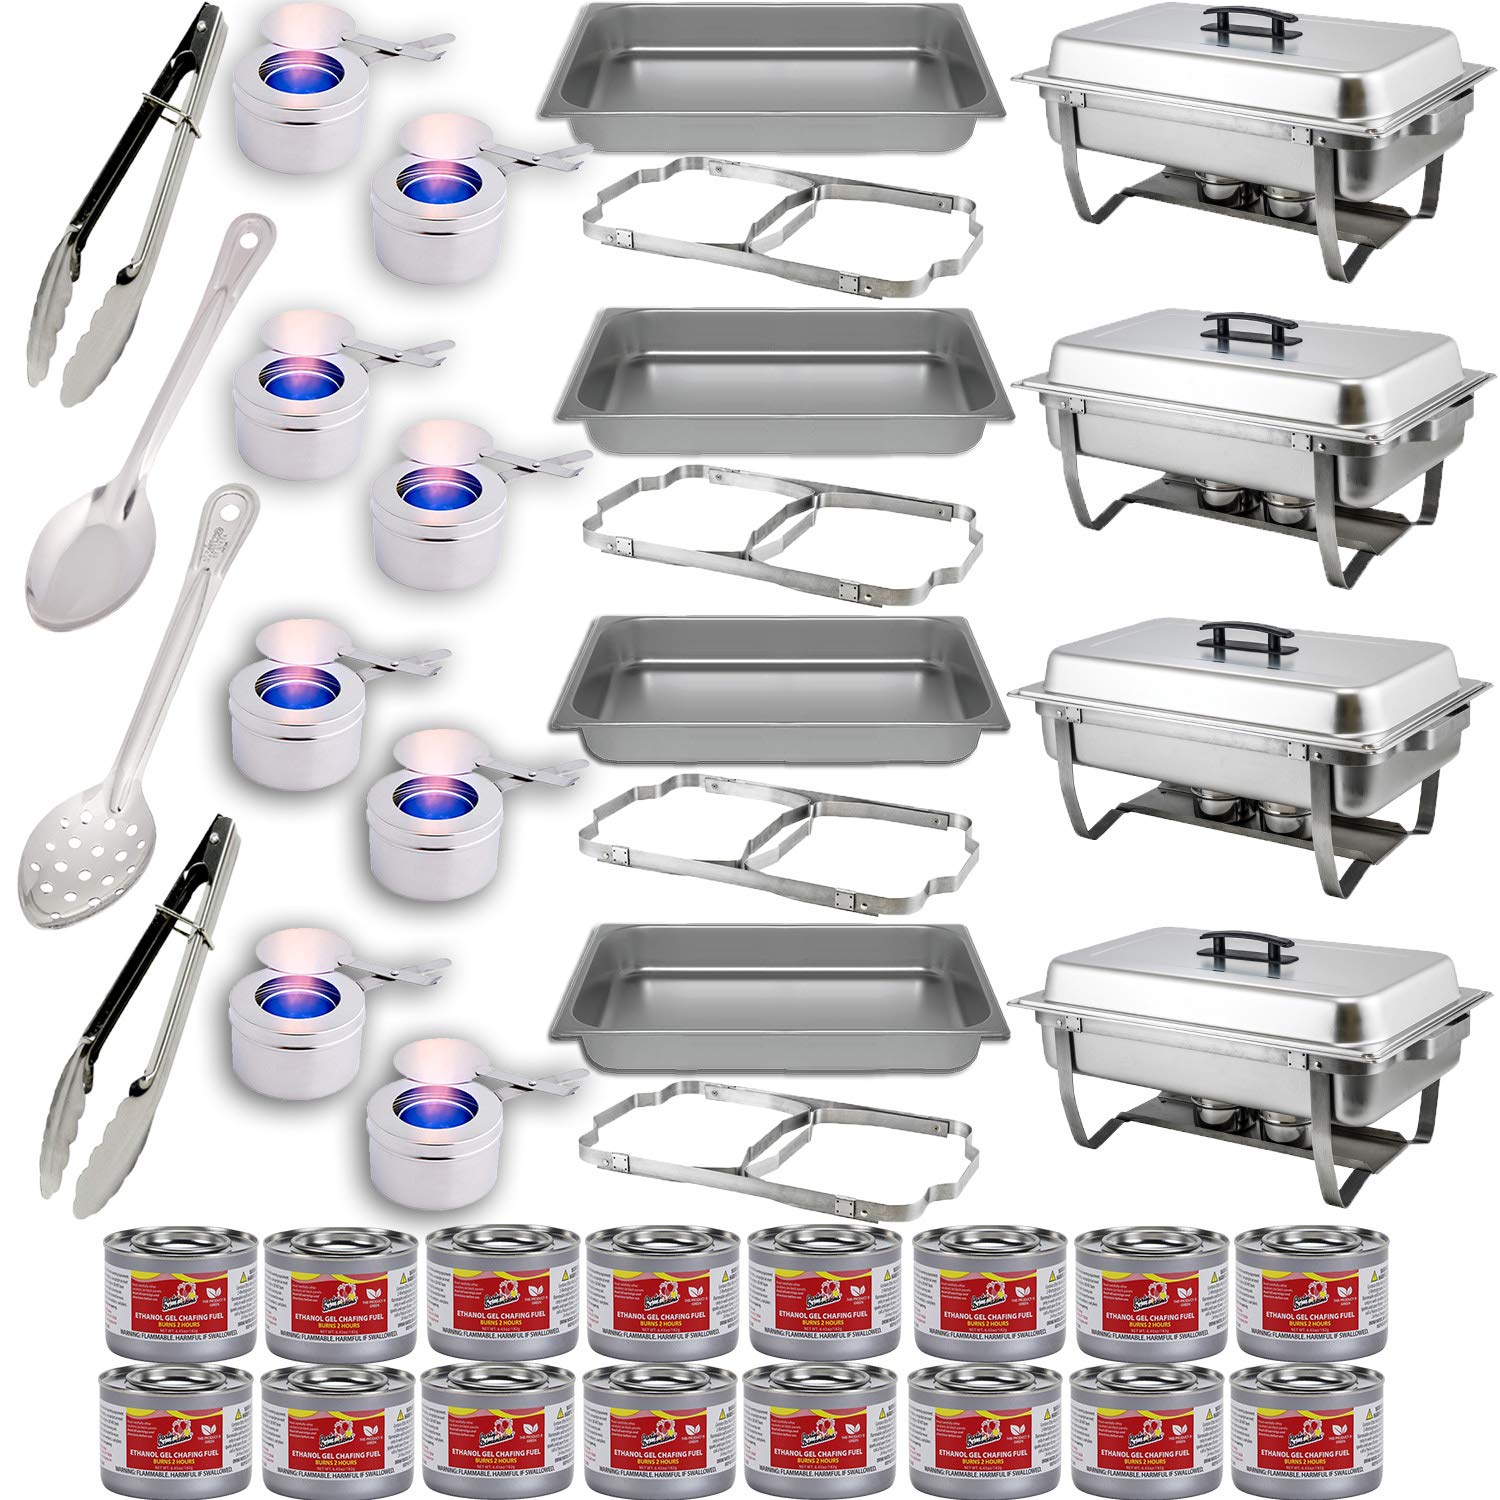 Chafing Dish Buffet Set w/Fuel — Folding Frame + Water Pan + Food Pan (8 qt) + 8 Fuel Holders + 16 Fuel Cans + 4 Serving Utensils (15'' Perforated and Solid Spoon + two 9'' Tongs) – 4 Full Warmer Kit